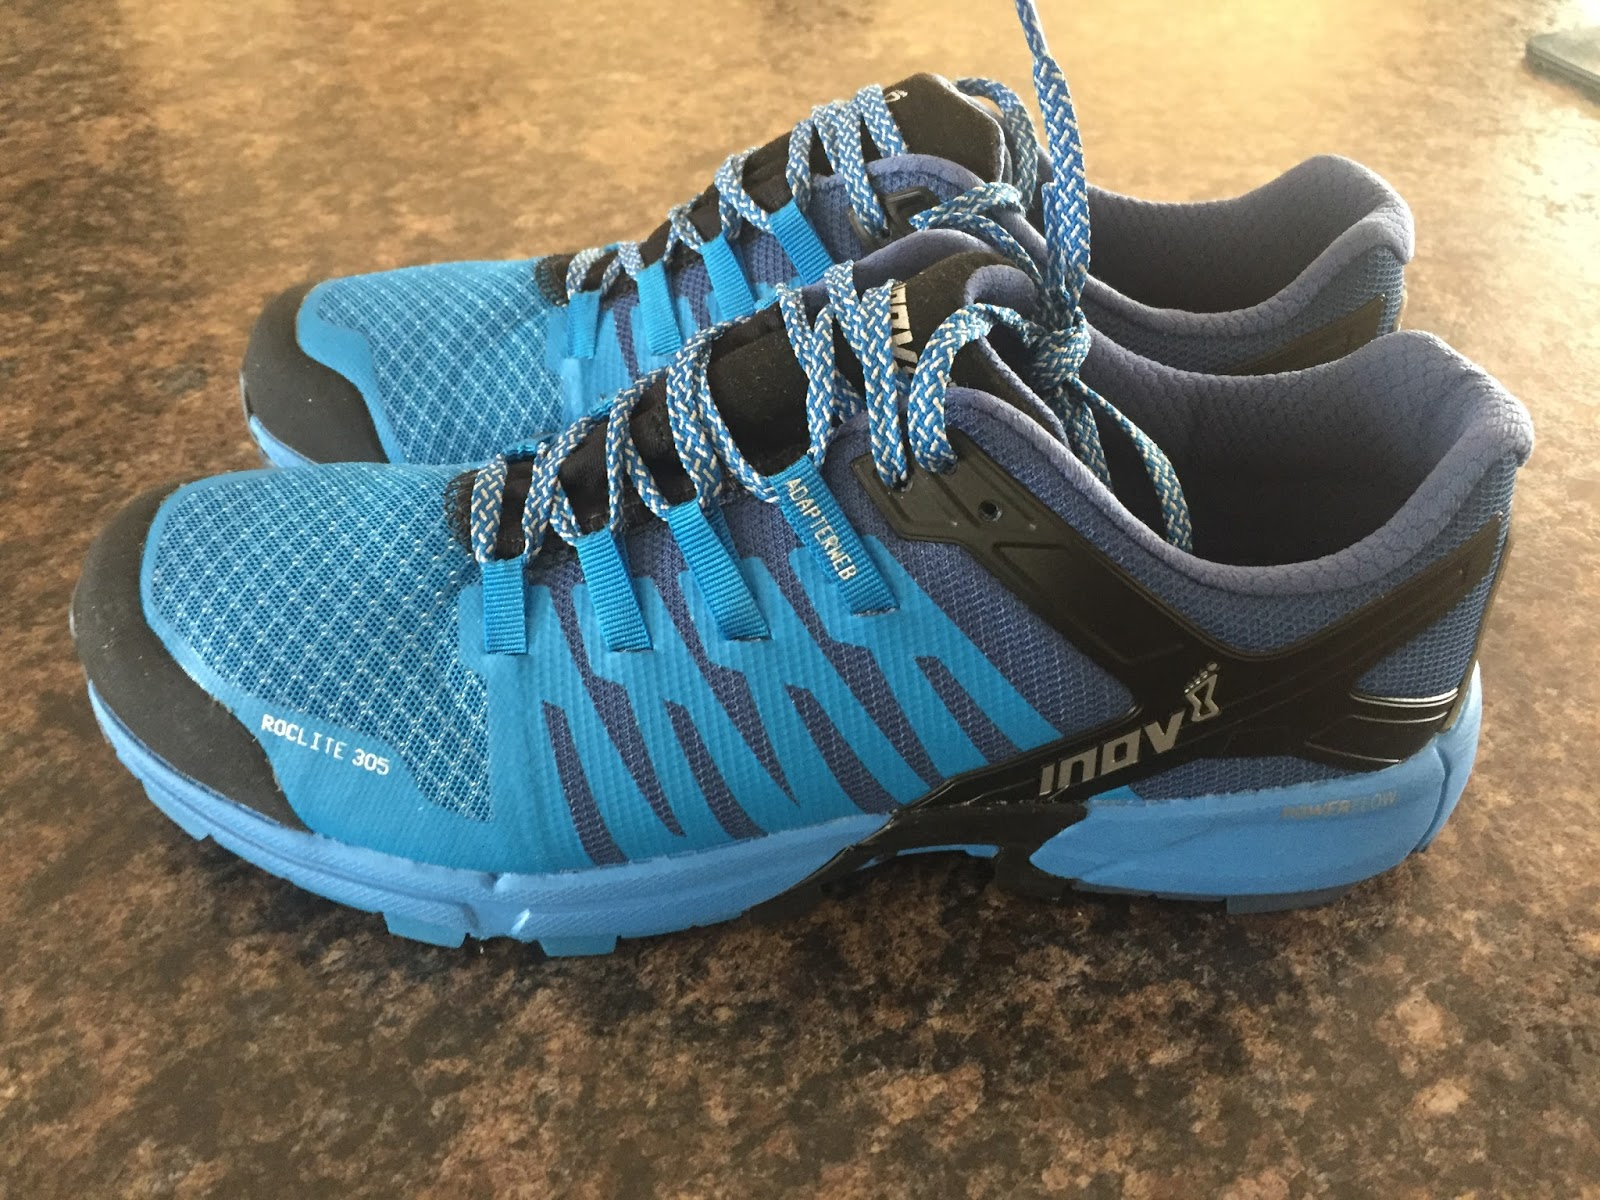 buy popular fabd7 f96d4 Road Trail Run: Inov-8 Roclite 305 Review - A Well Rounded ...